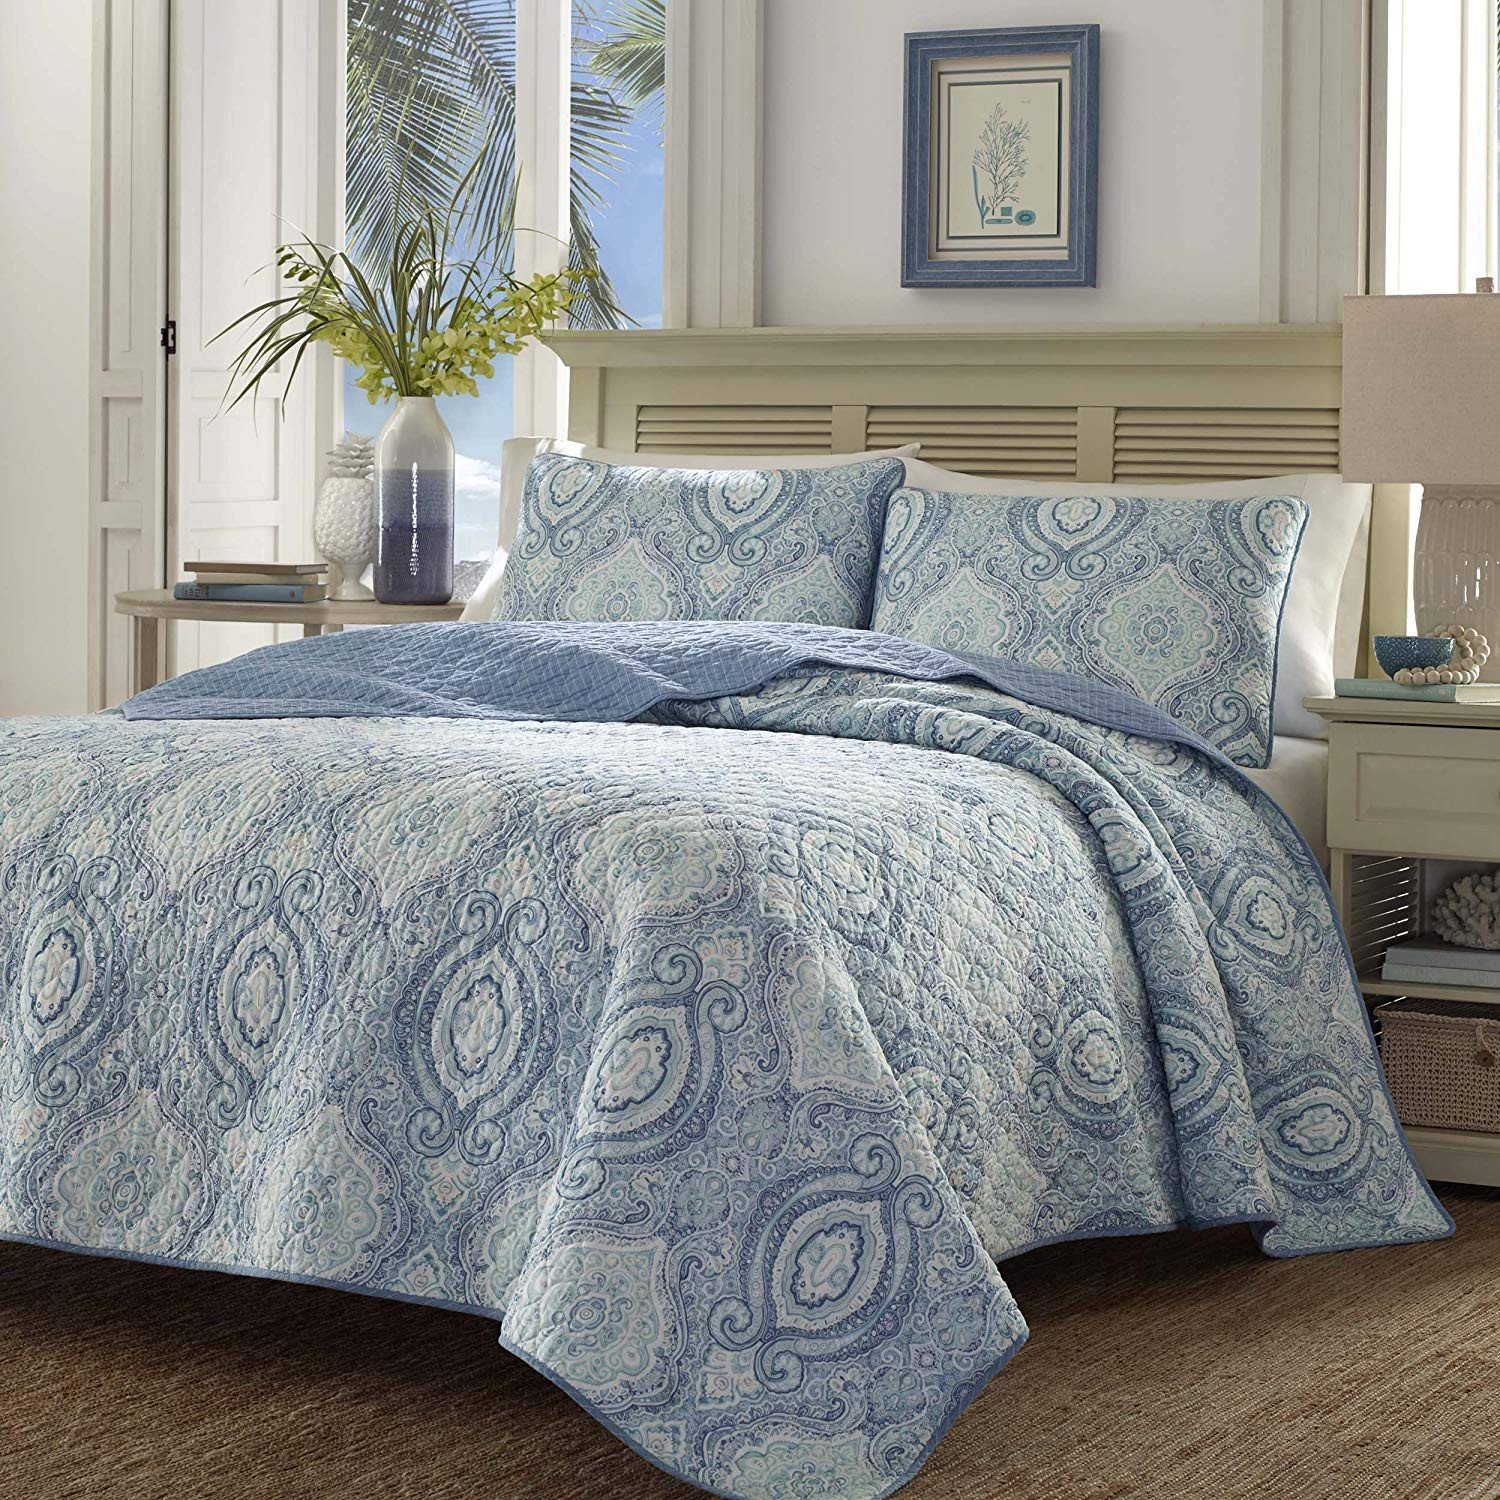 Tommy Bahama Bedroom Furniture Beautiful tommy Bahama Turtle Cove Caribbean Quilt Set King Carribean Blue